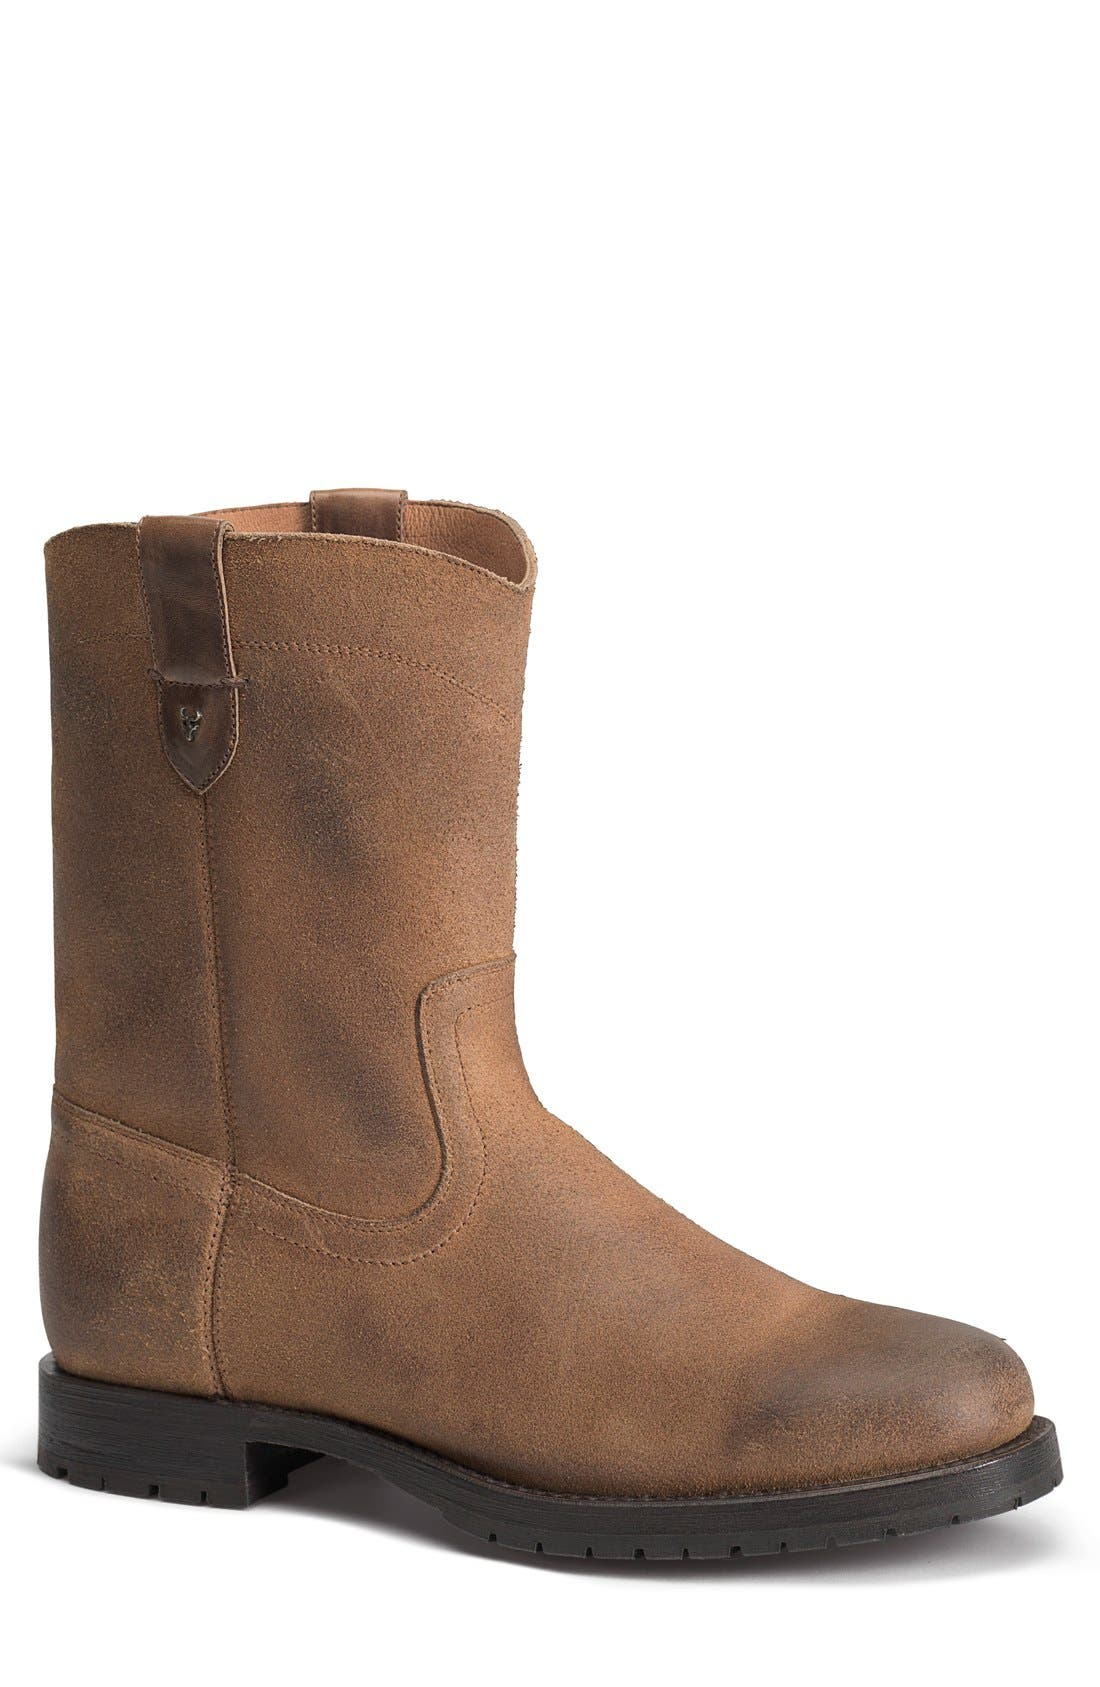 'Austin' Boot,                             Main thumbnail 1, color,                             Whiskey Leather